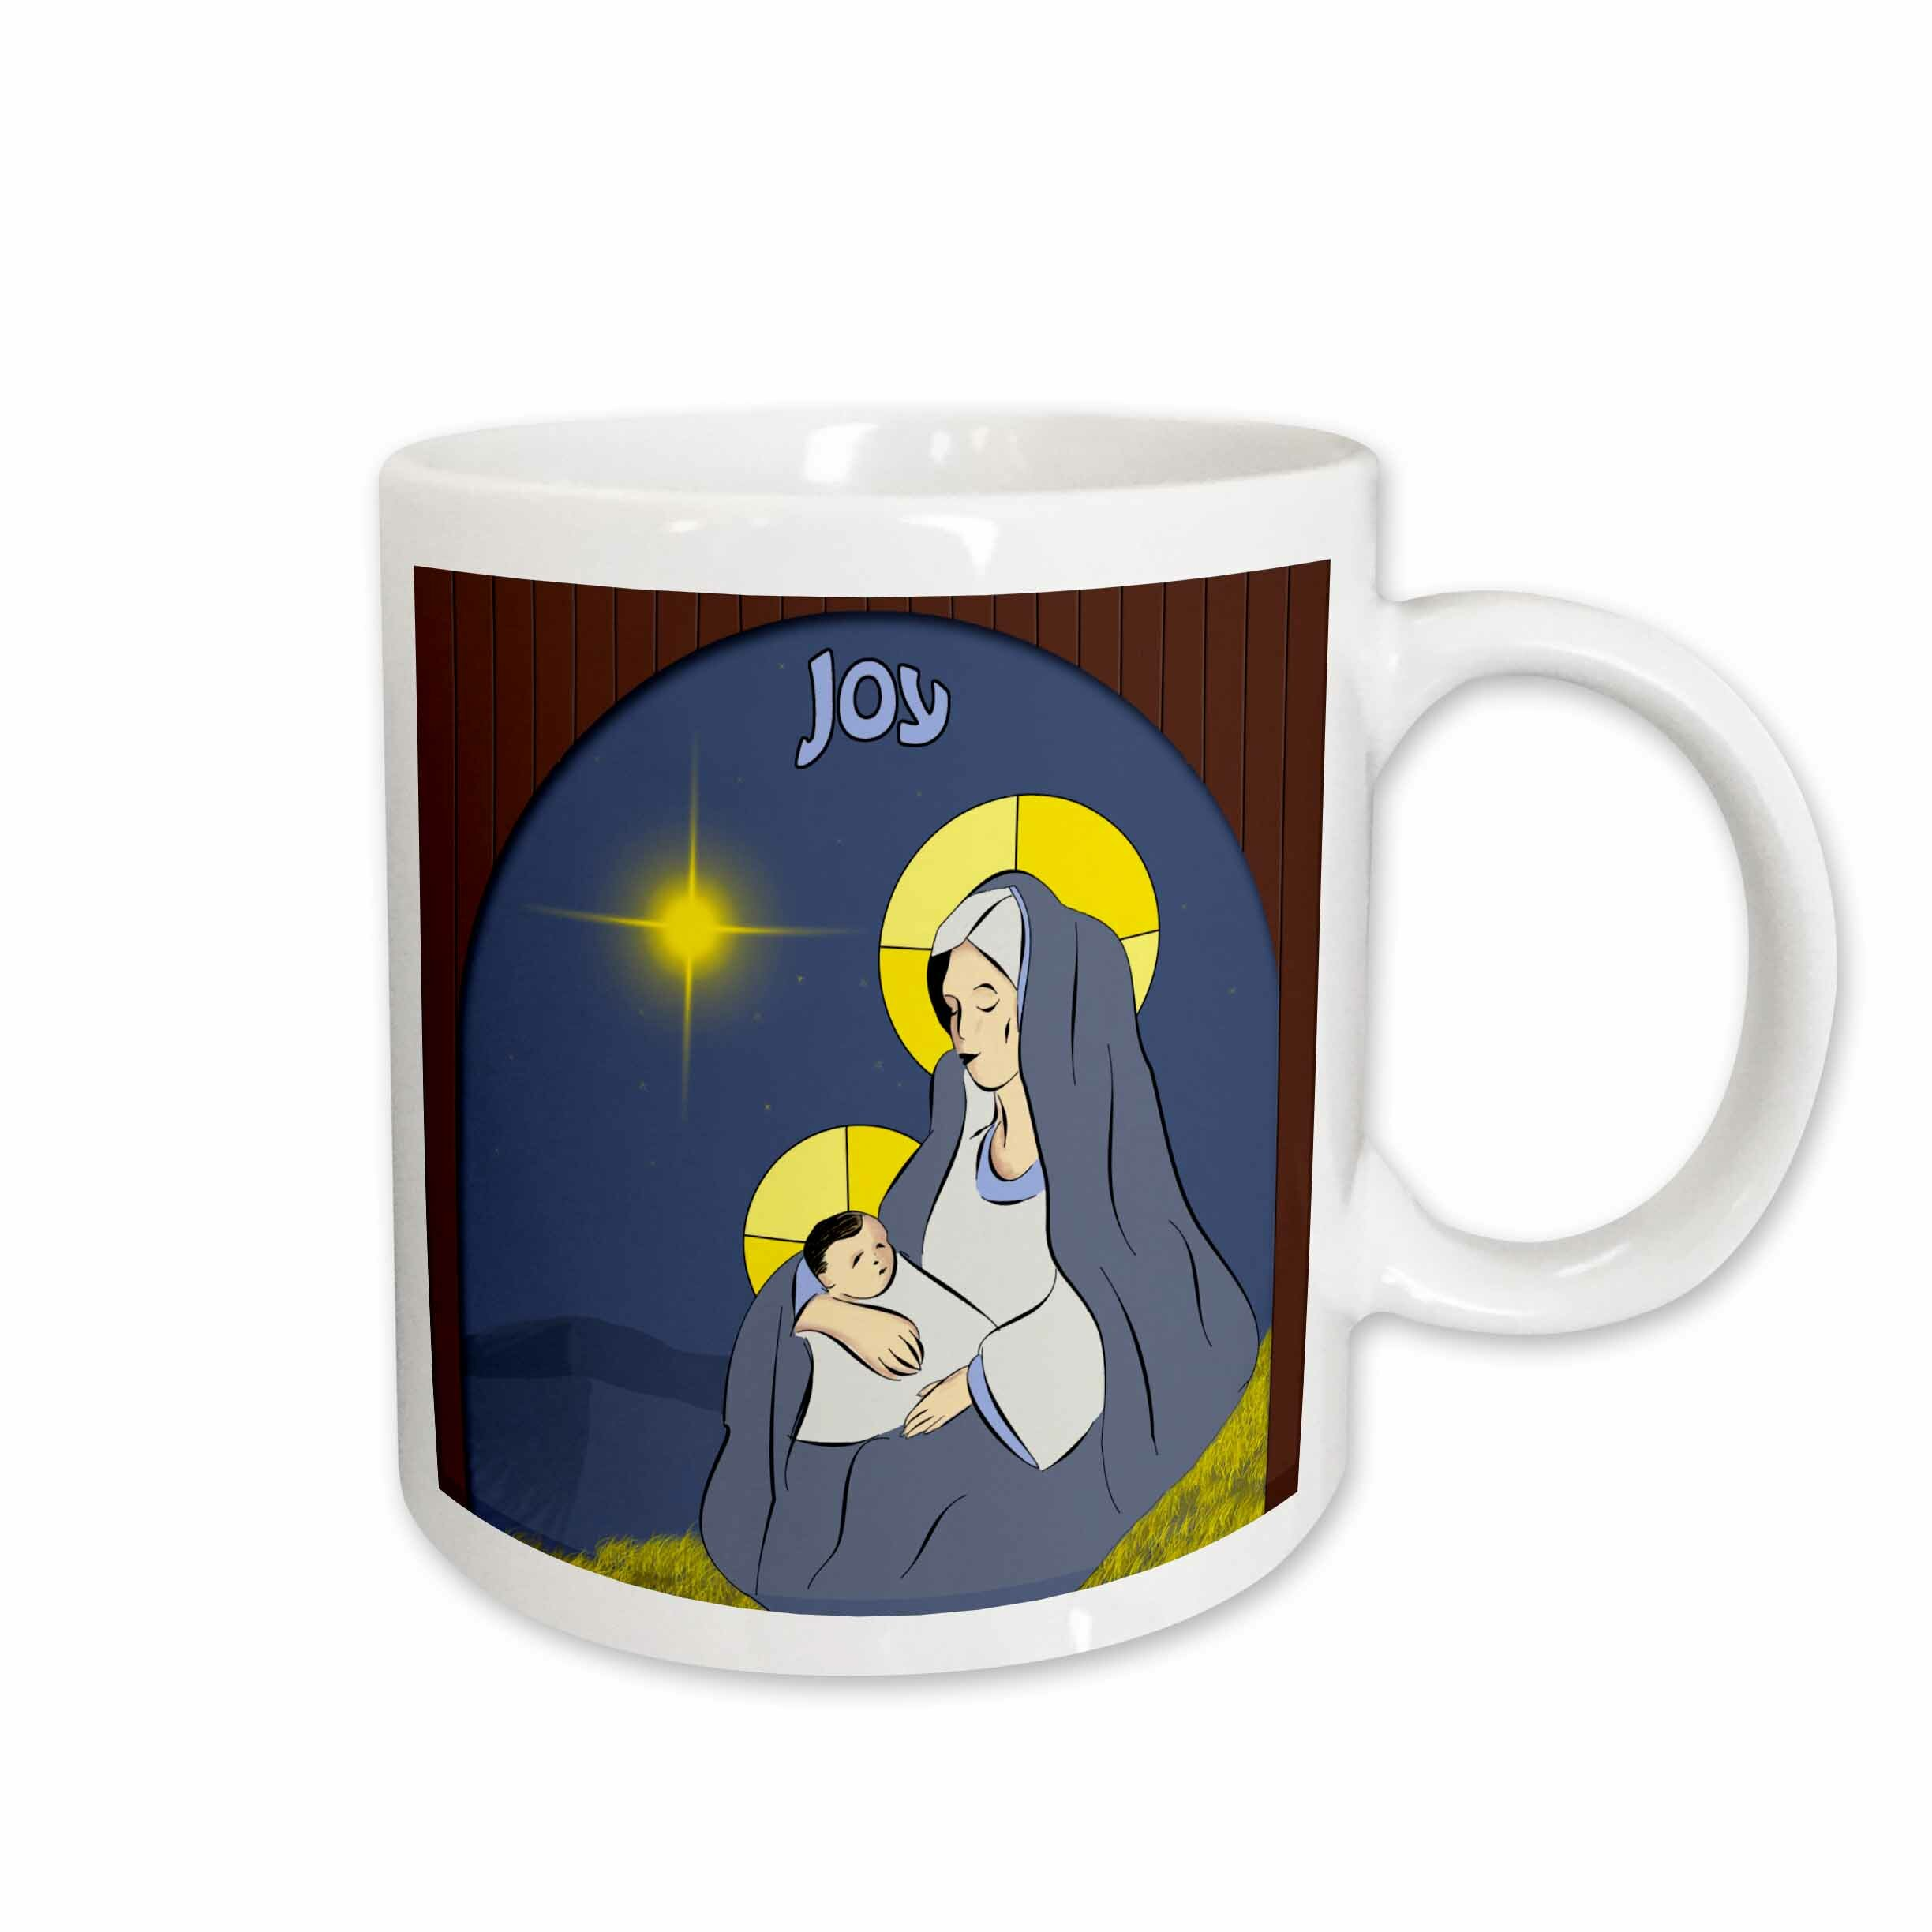 East Urban Home A Window Depicting The Virgin Mother Mary With Child Jesus Coffee Mug Wayfair